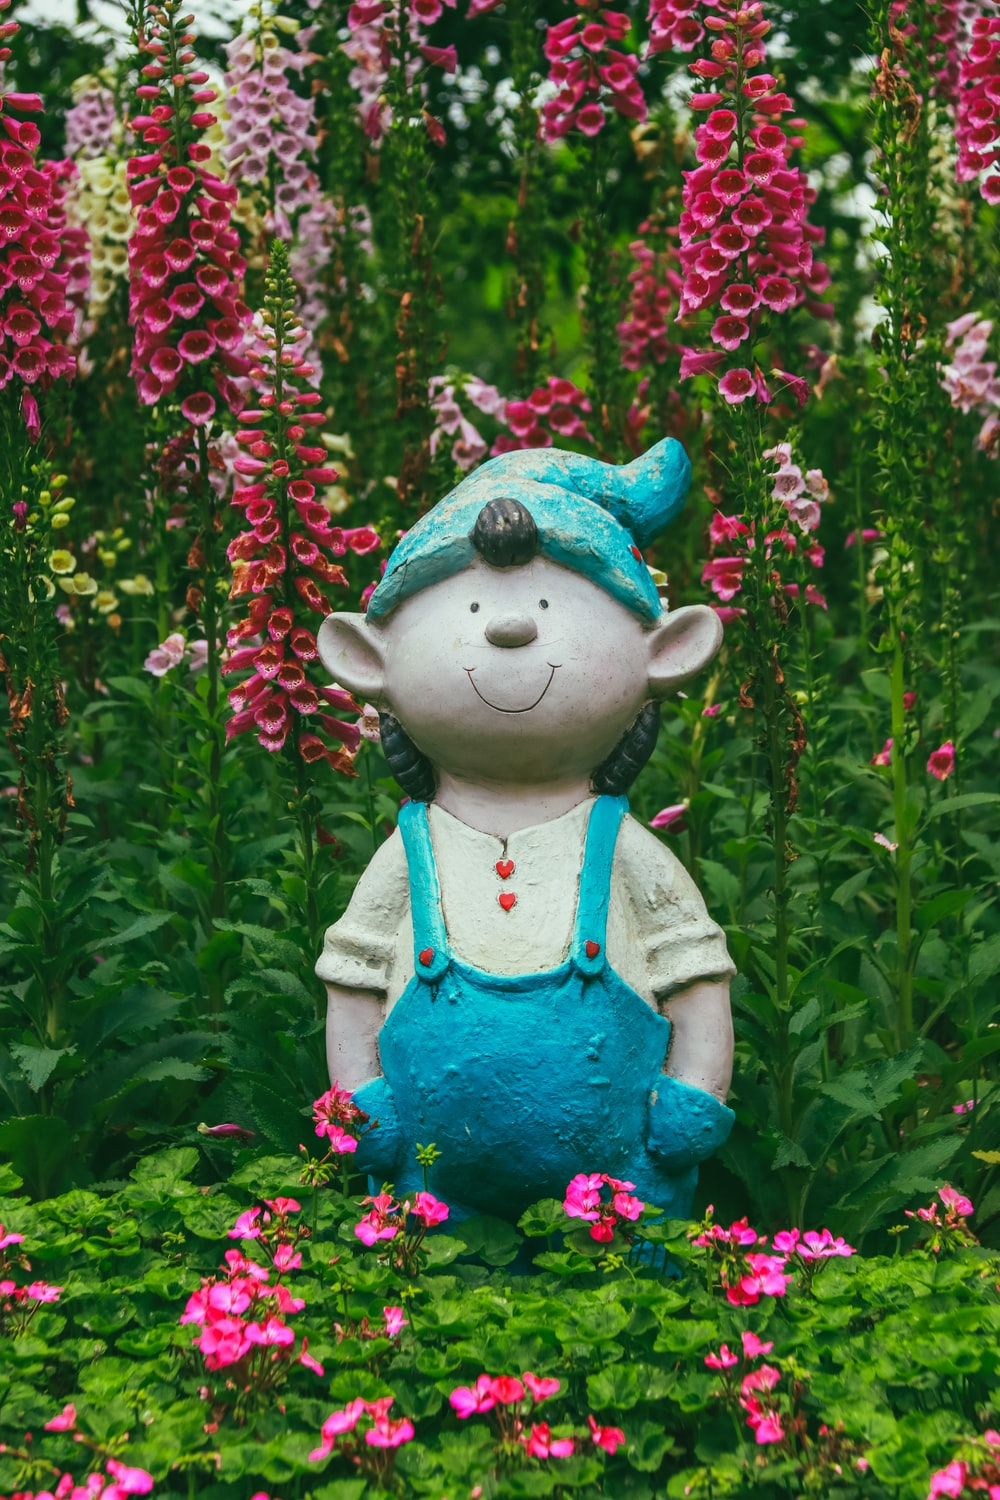 shallow focus photo of boy wearing blue hat statue near pink flowers